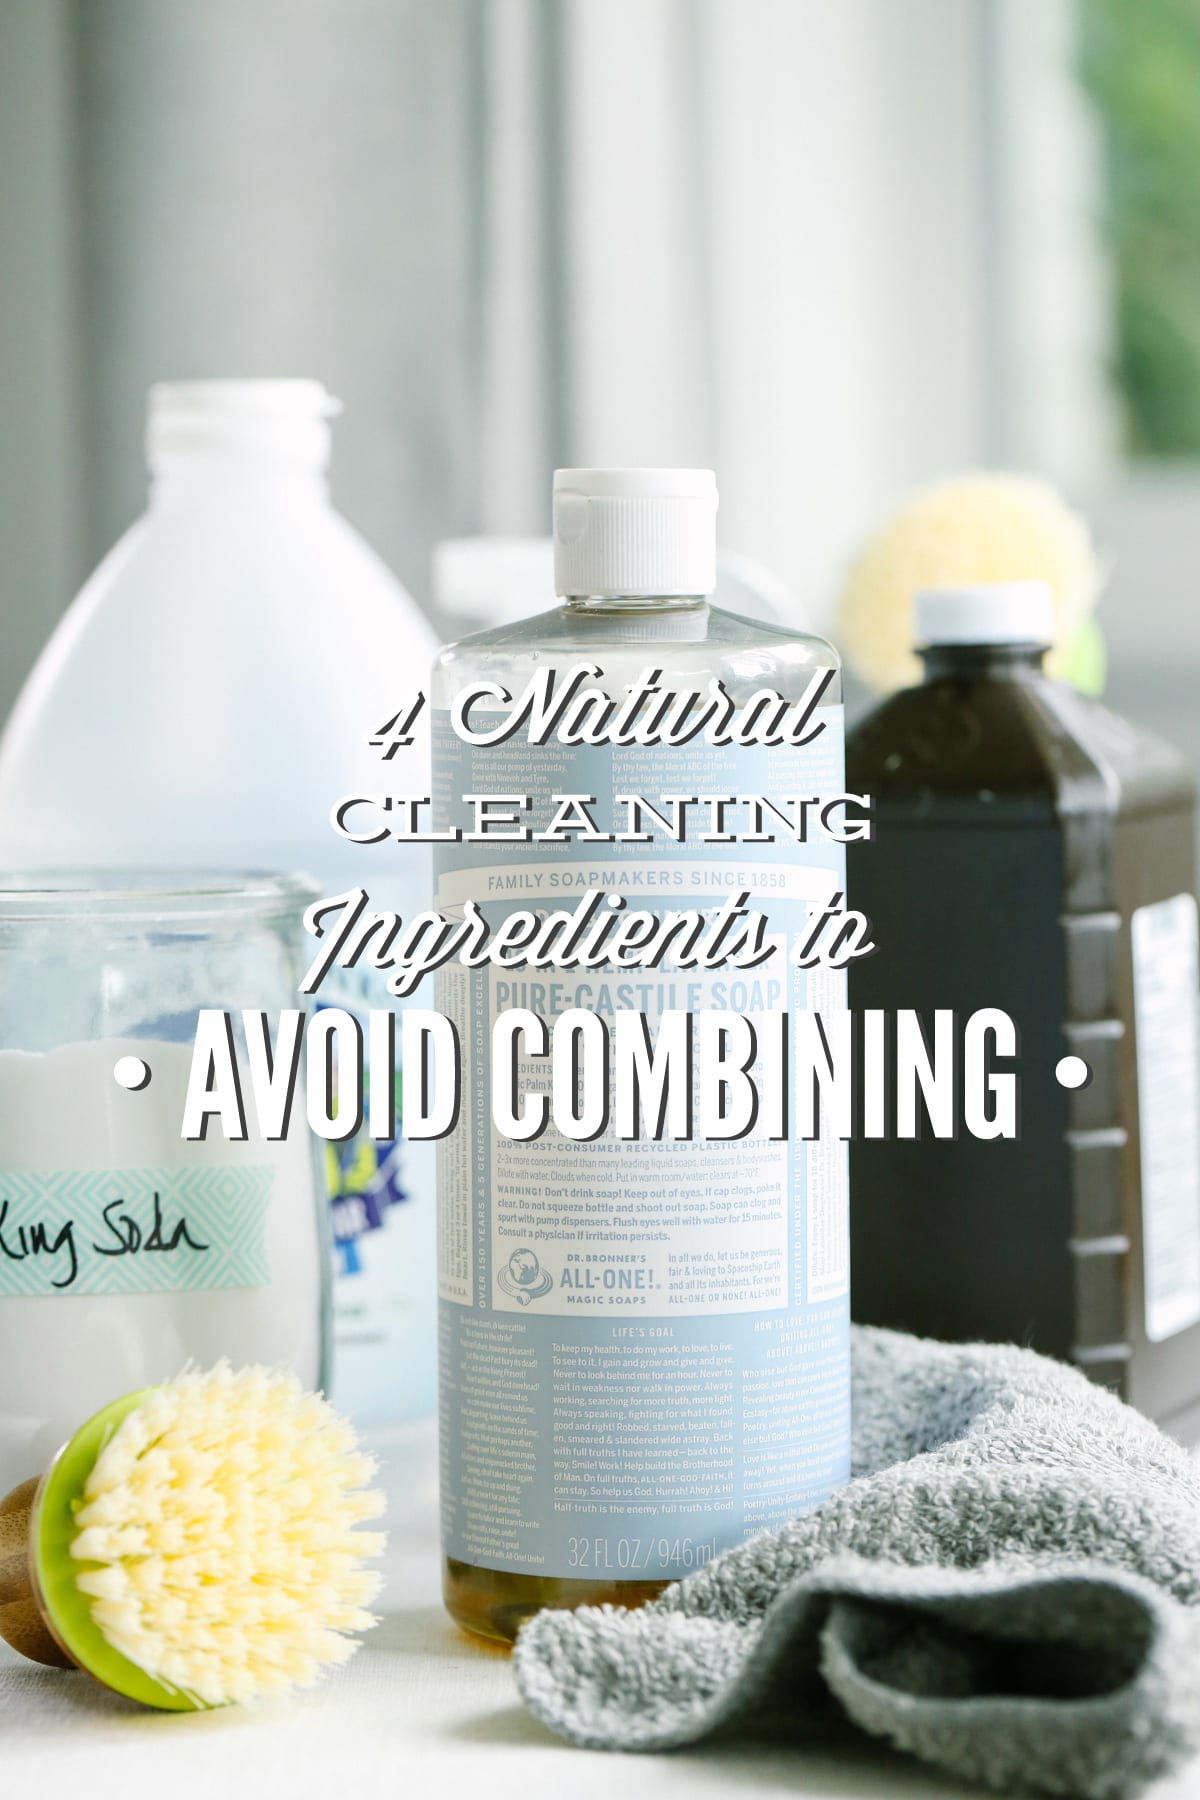 4 Natural Cleaning Ingredients to Avoid Combining - Live Simply